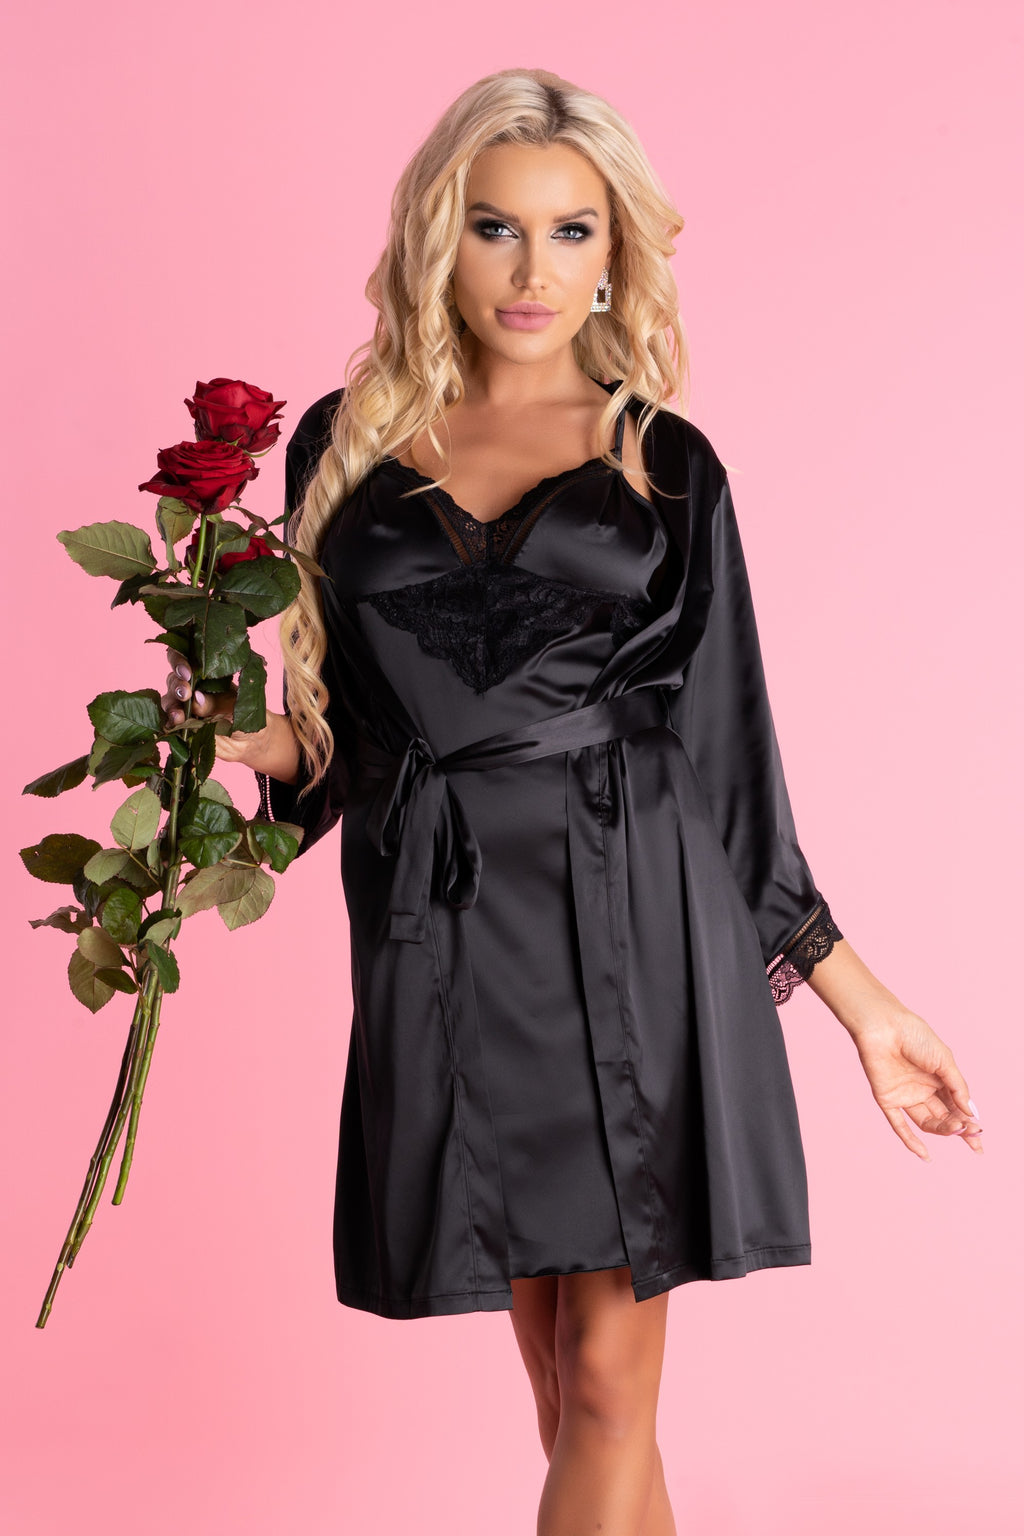 Ariladyen Satin Black Robe With Panties - EVOLESCENT